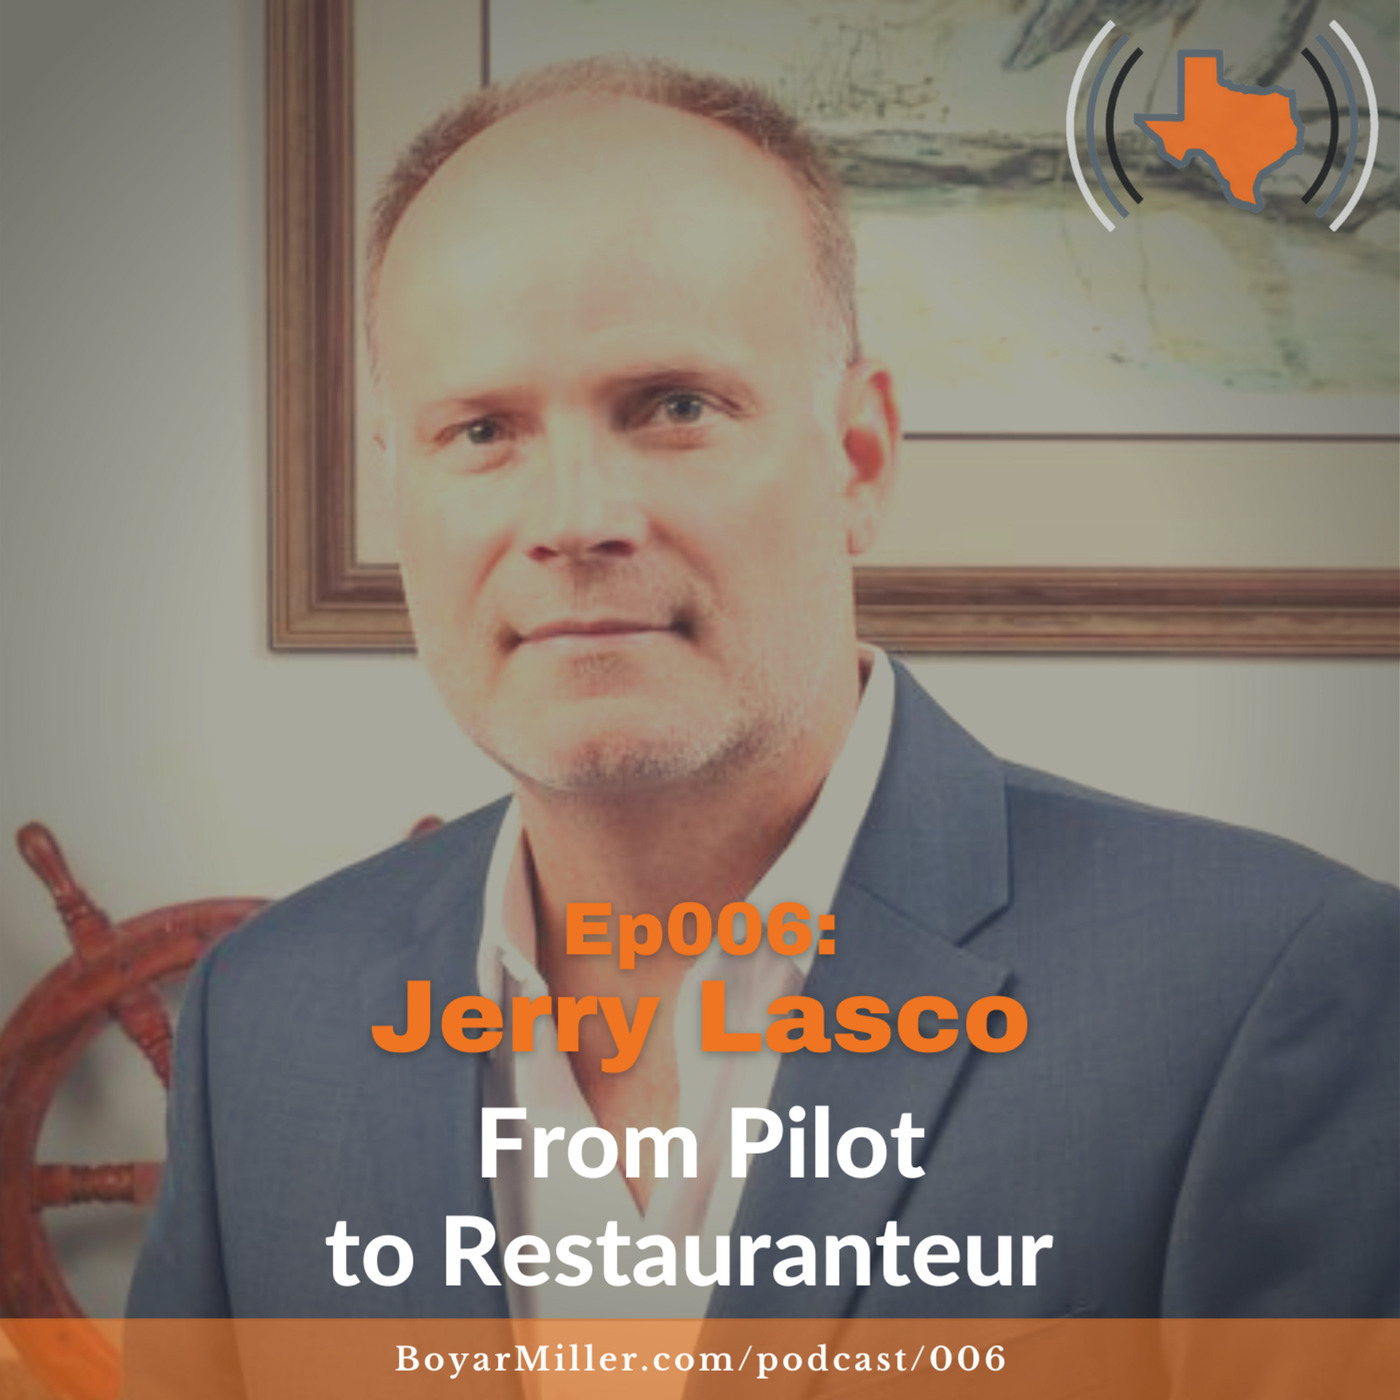 Building Texas Business: Ep006: From Pilot to Restauranteur with Jerry Lasco